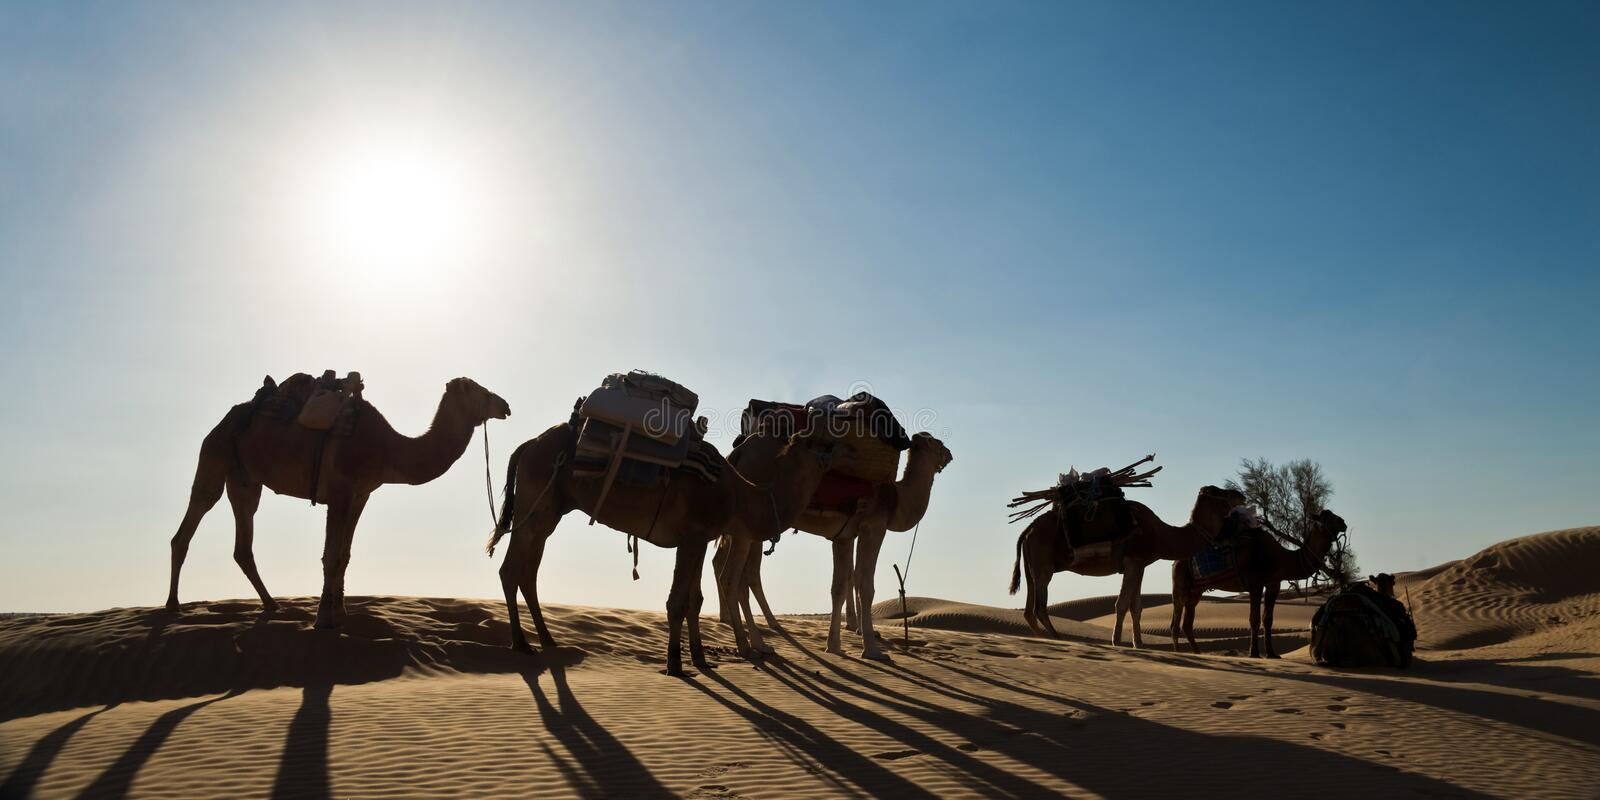 Download Silhouette Of A Caravan Of Camels In Sand Dunes - South Tunisia Stock Image - Image of arabic, desert: 118776375